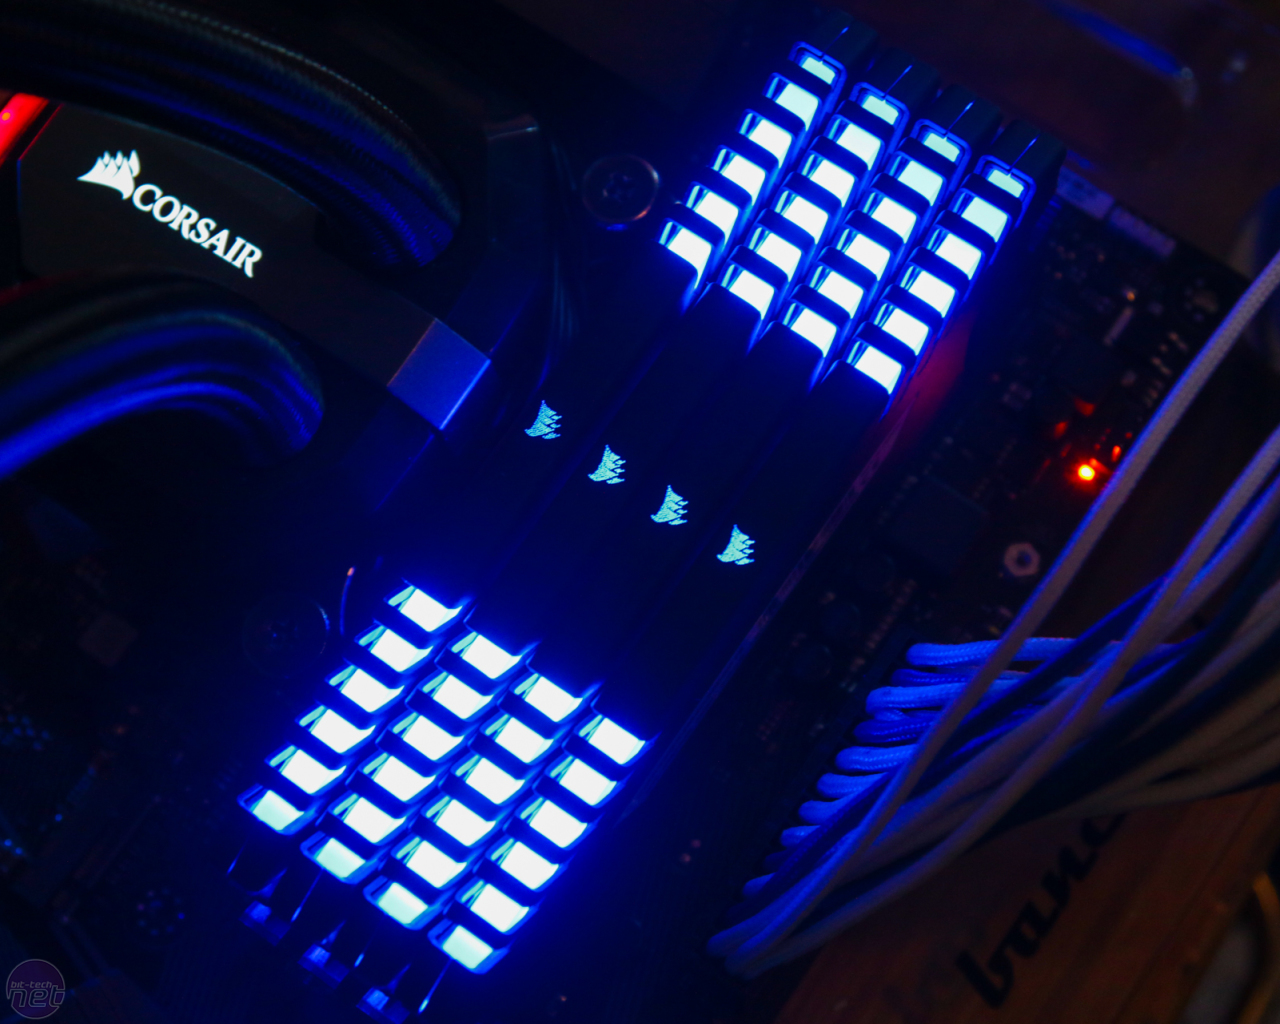 Corsair Rgb Corsair Vengeance Rgb Memory Preview Bit Tech